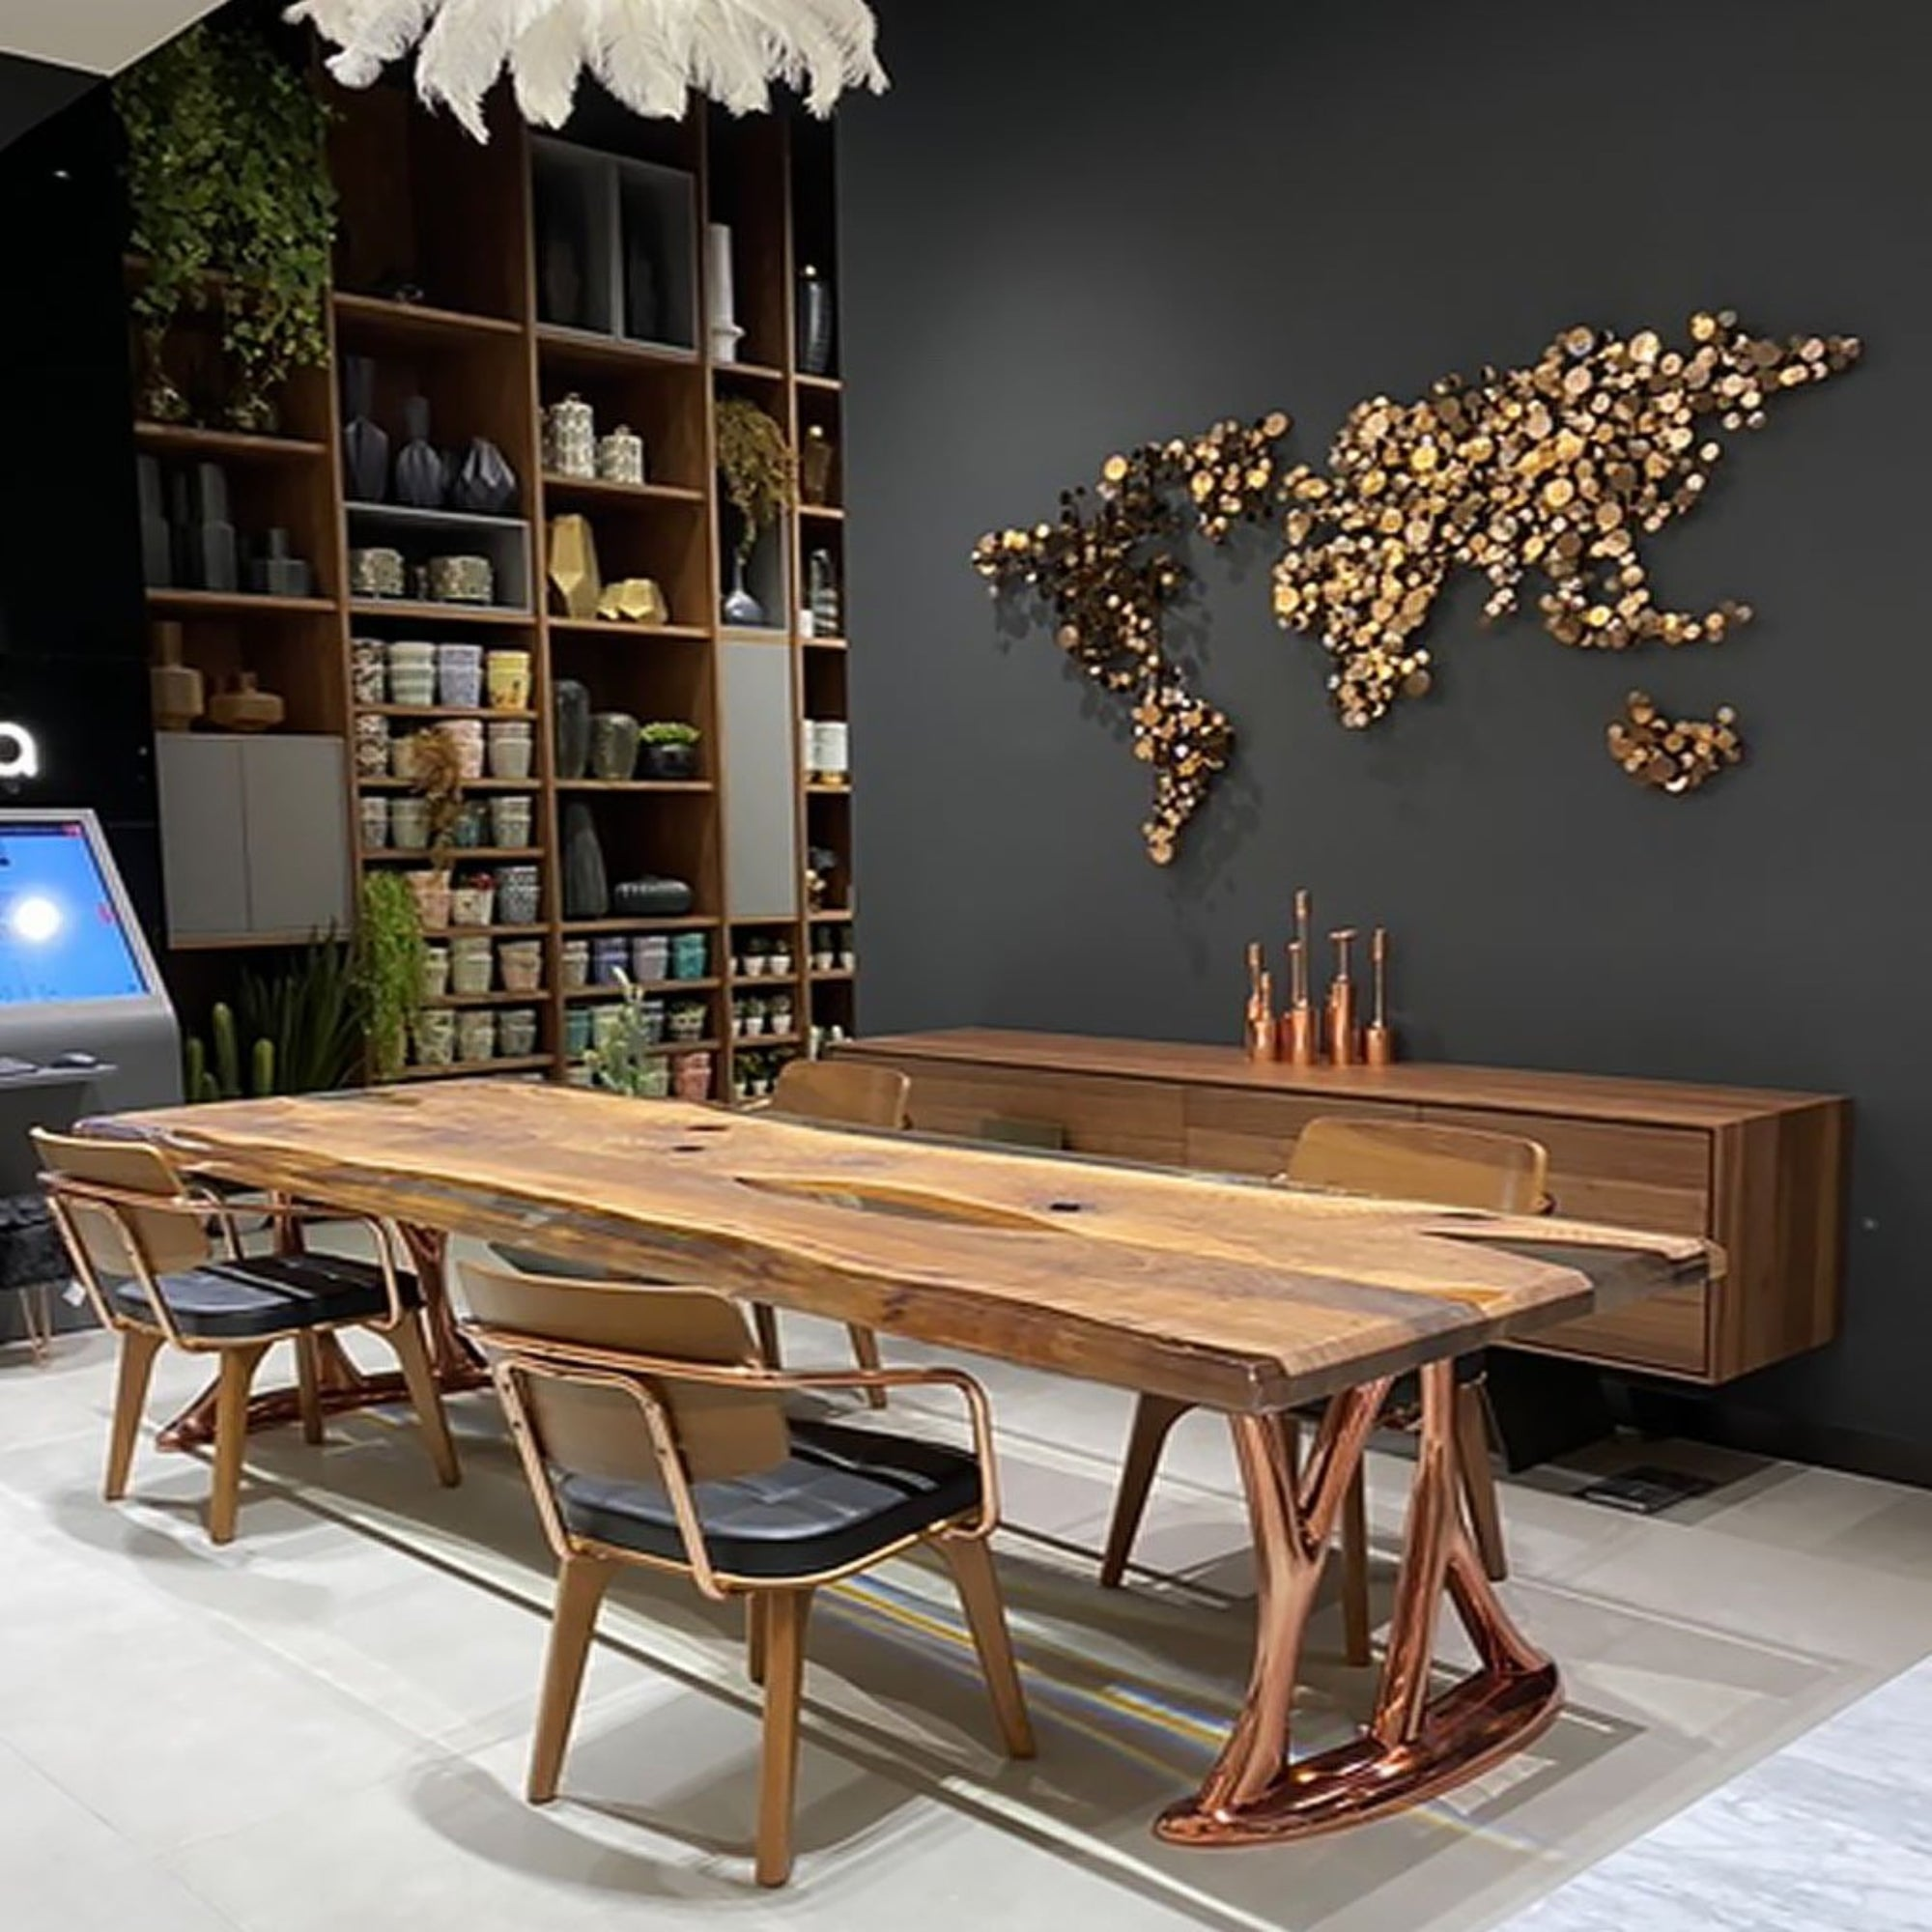 240X100 CM LIVE EDGE RESIN DINING TABLE TOP SAN240X100 - ebarza